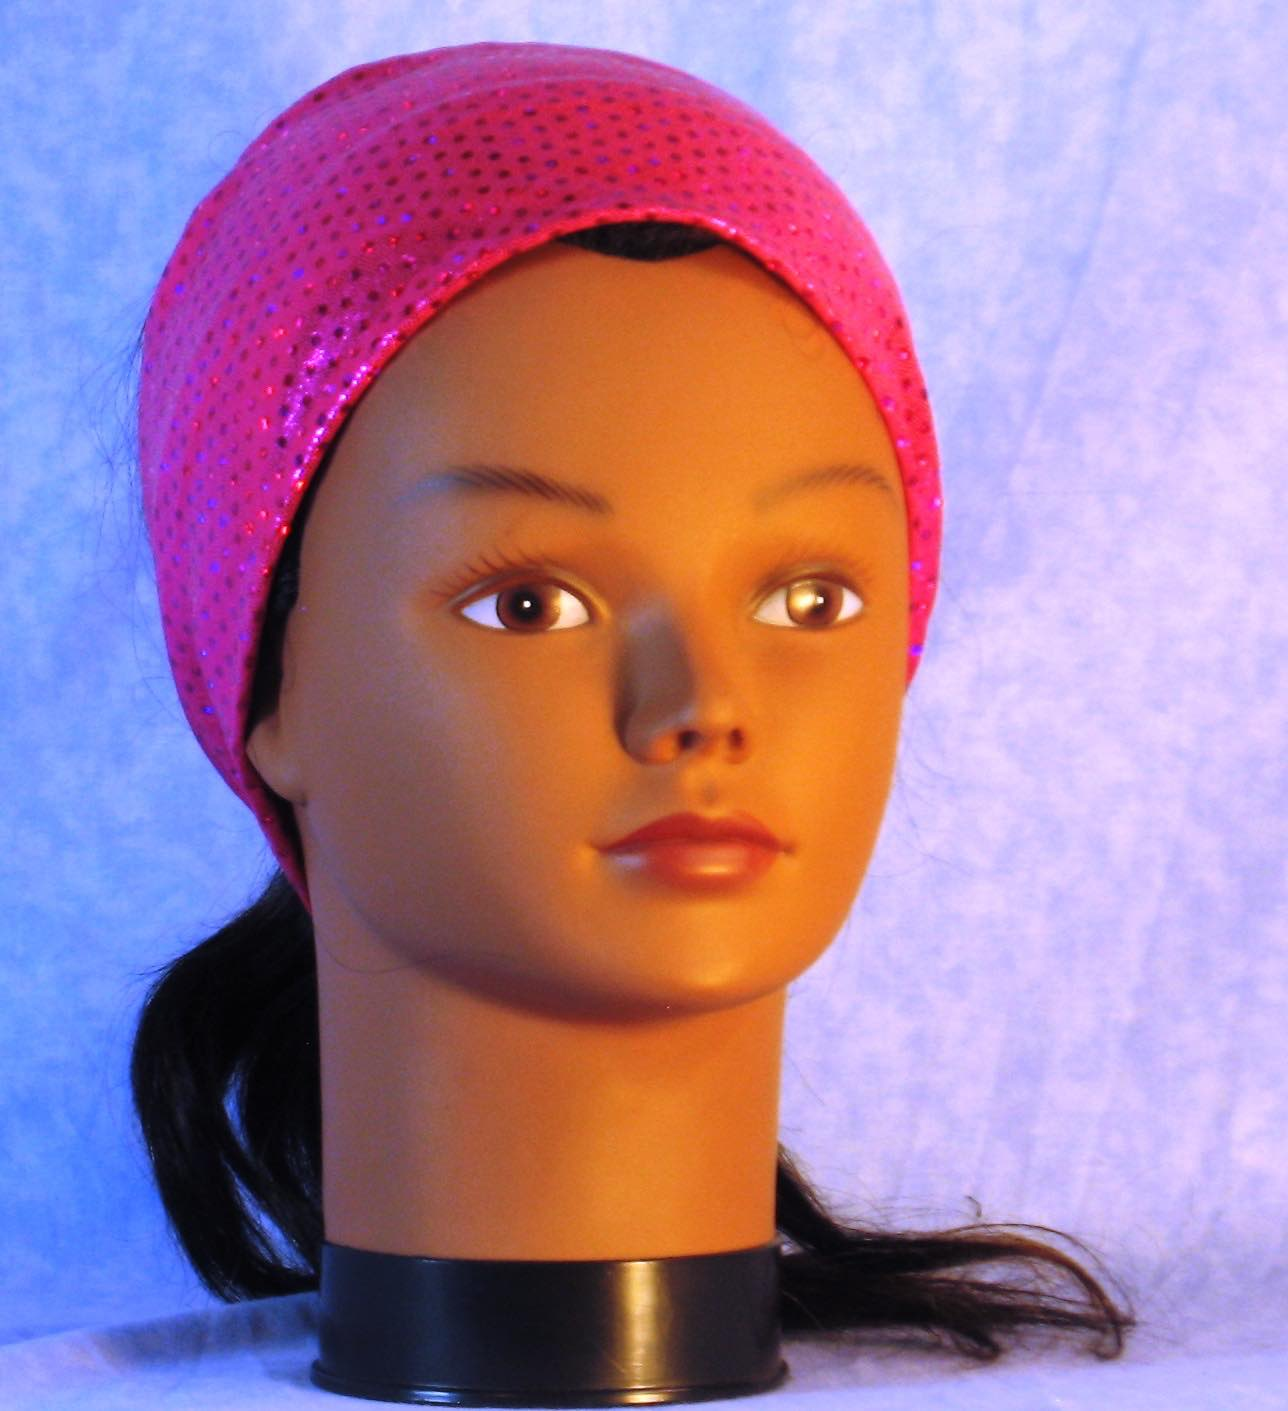 Headband-Hot Pink Dots Sparkle Performance Knit-Youth S-M